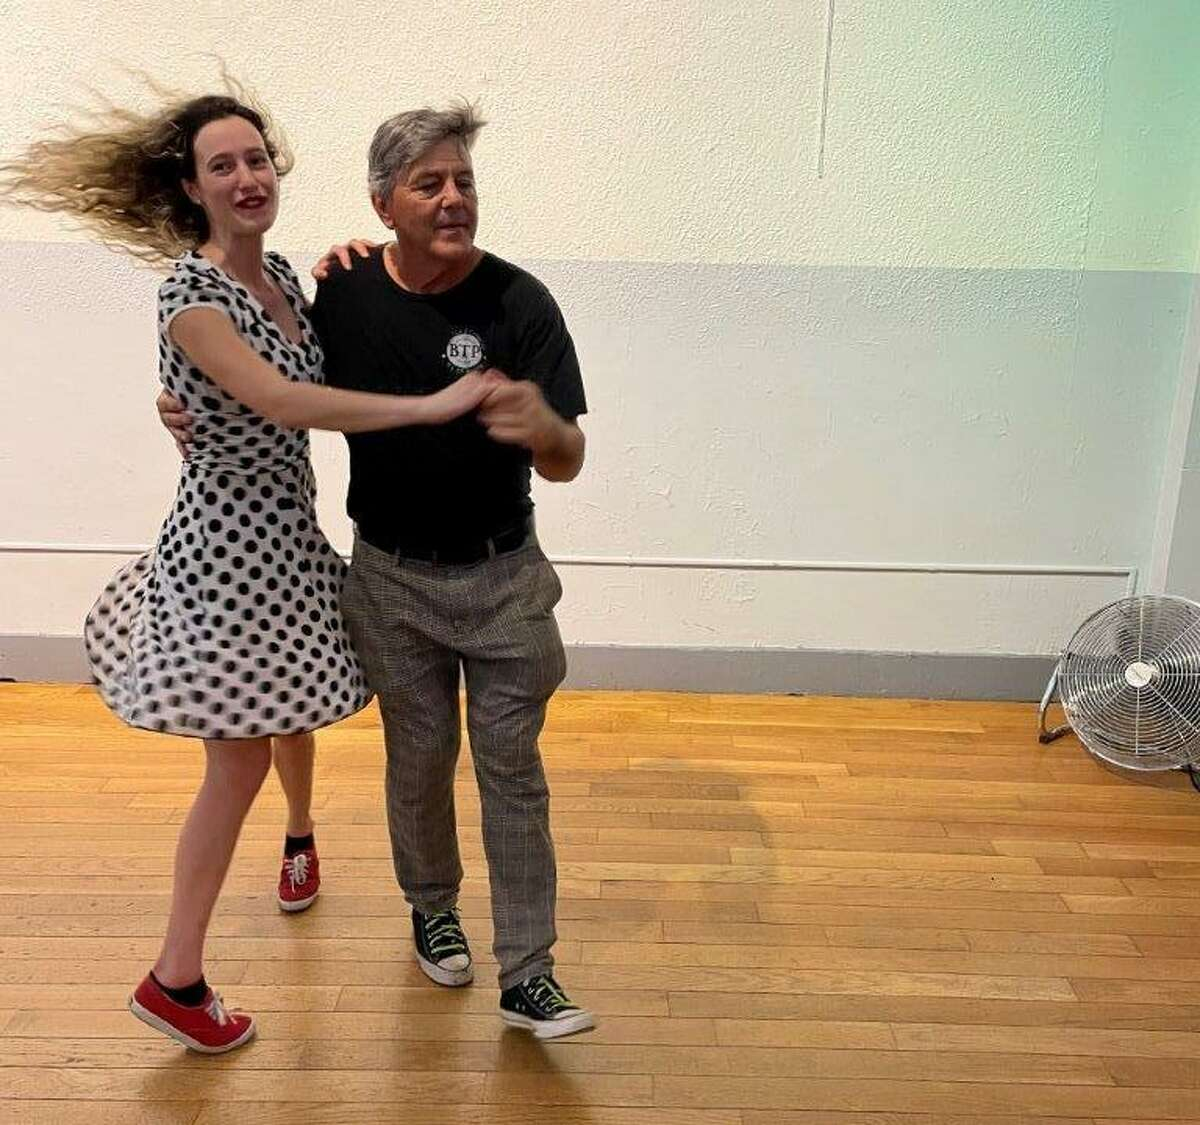 Bruce Johnson and Molly Barnett, who taught the Lindy hop class at Vinnie's Jump and Jive in Middletown, CT on July 19, 2020.